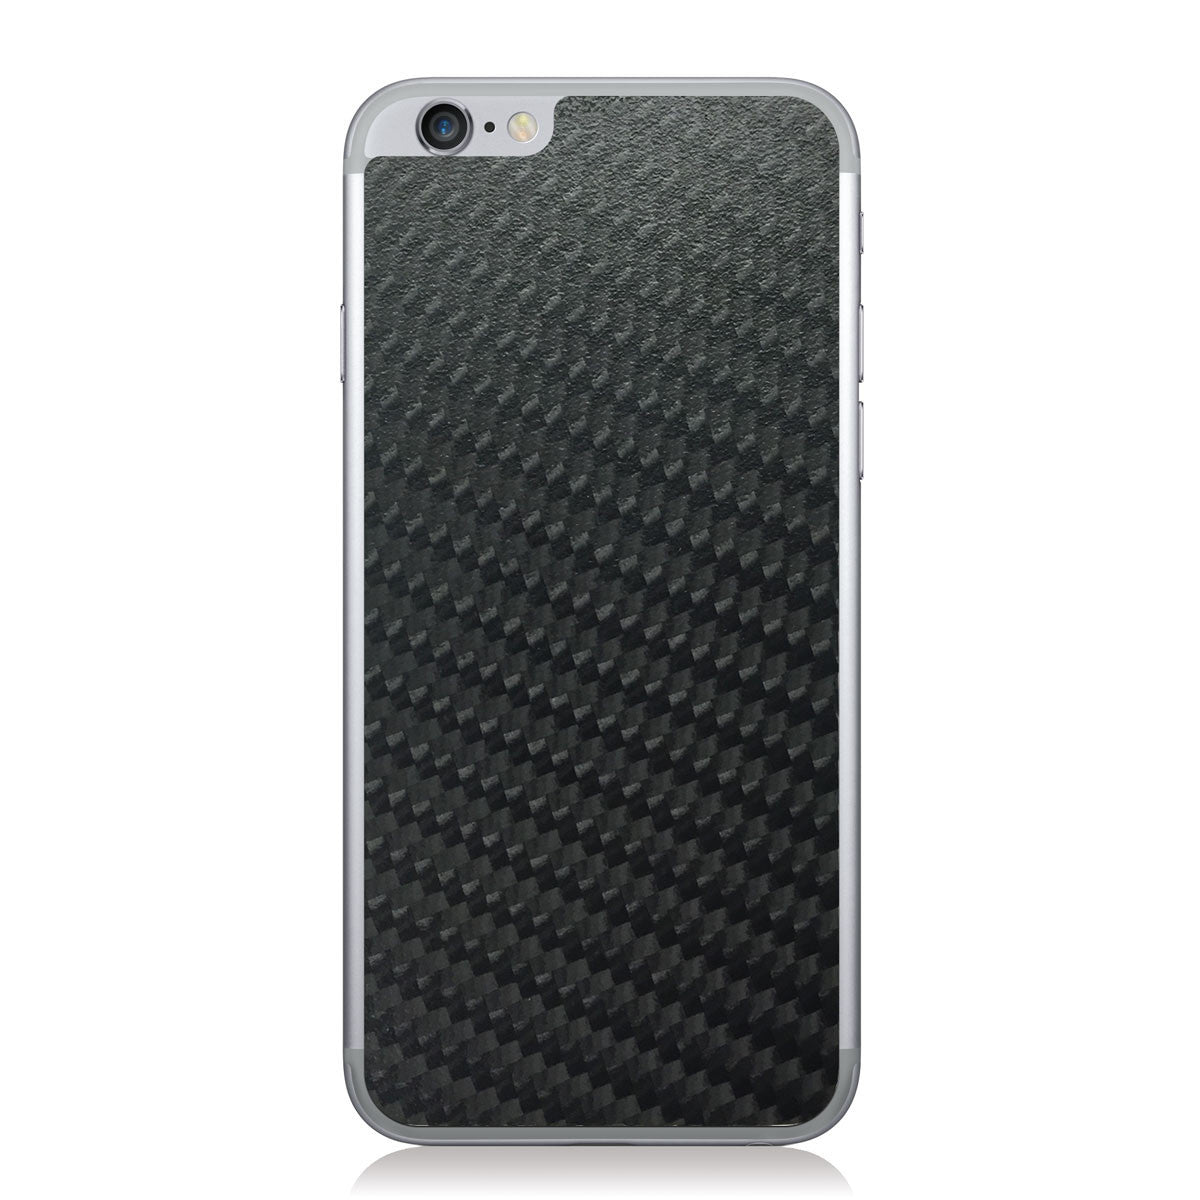 Matte Carbon Fiber iPhone 6/6s Skin